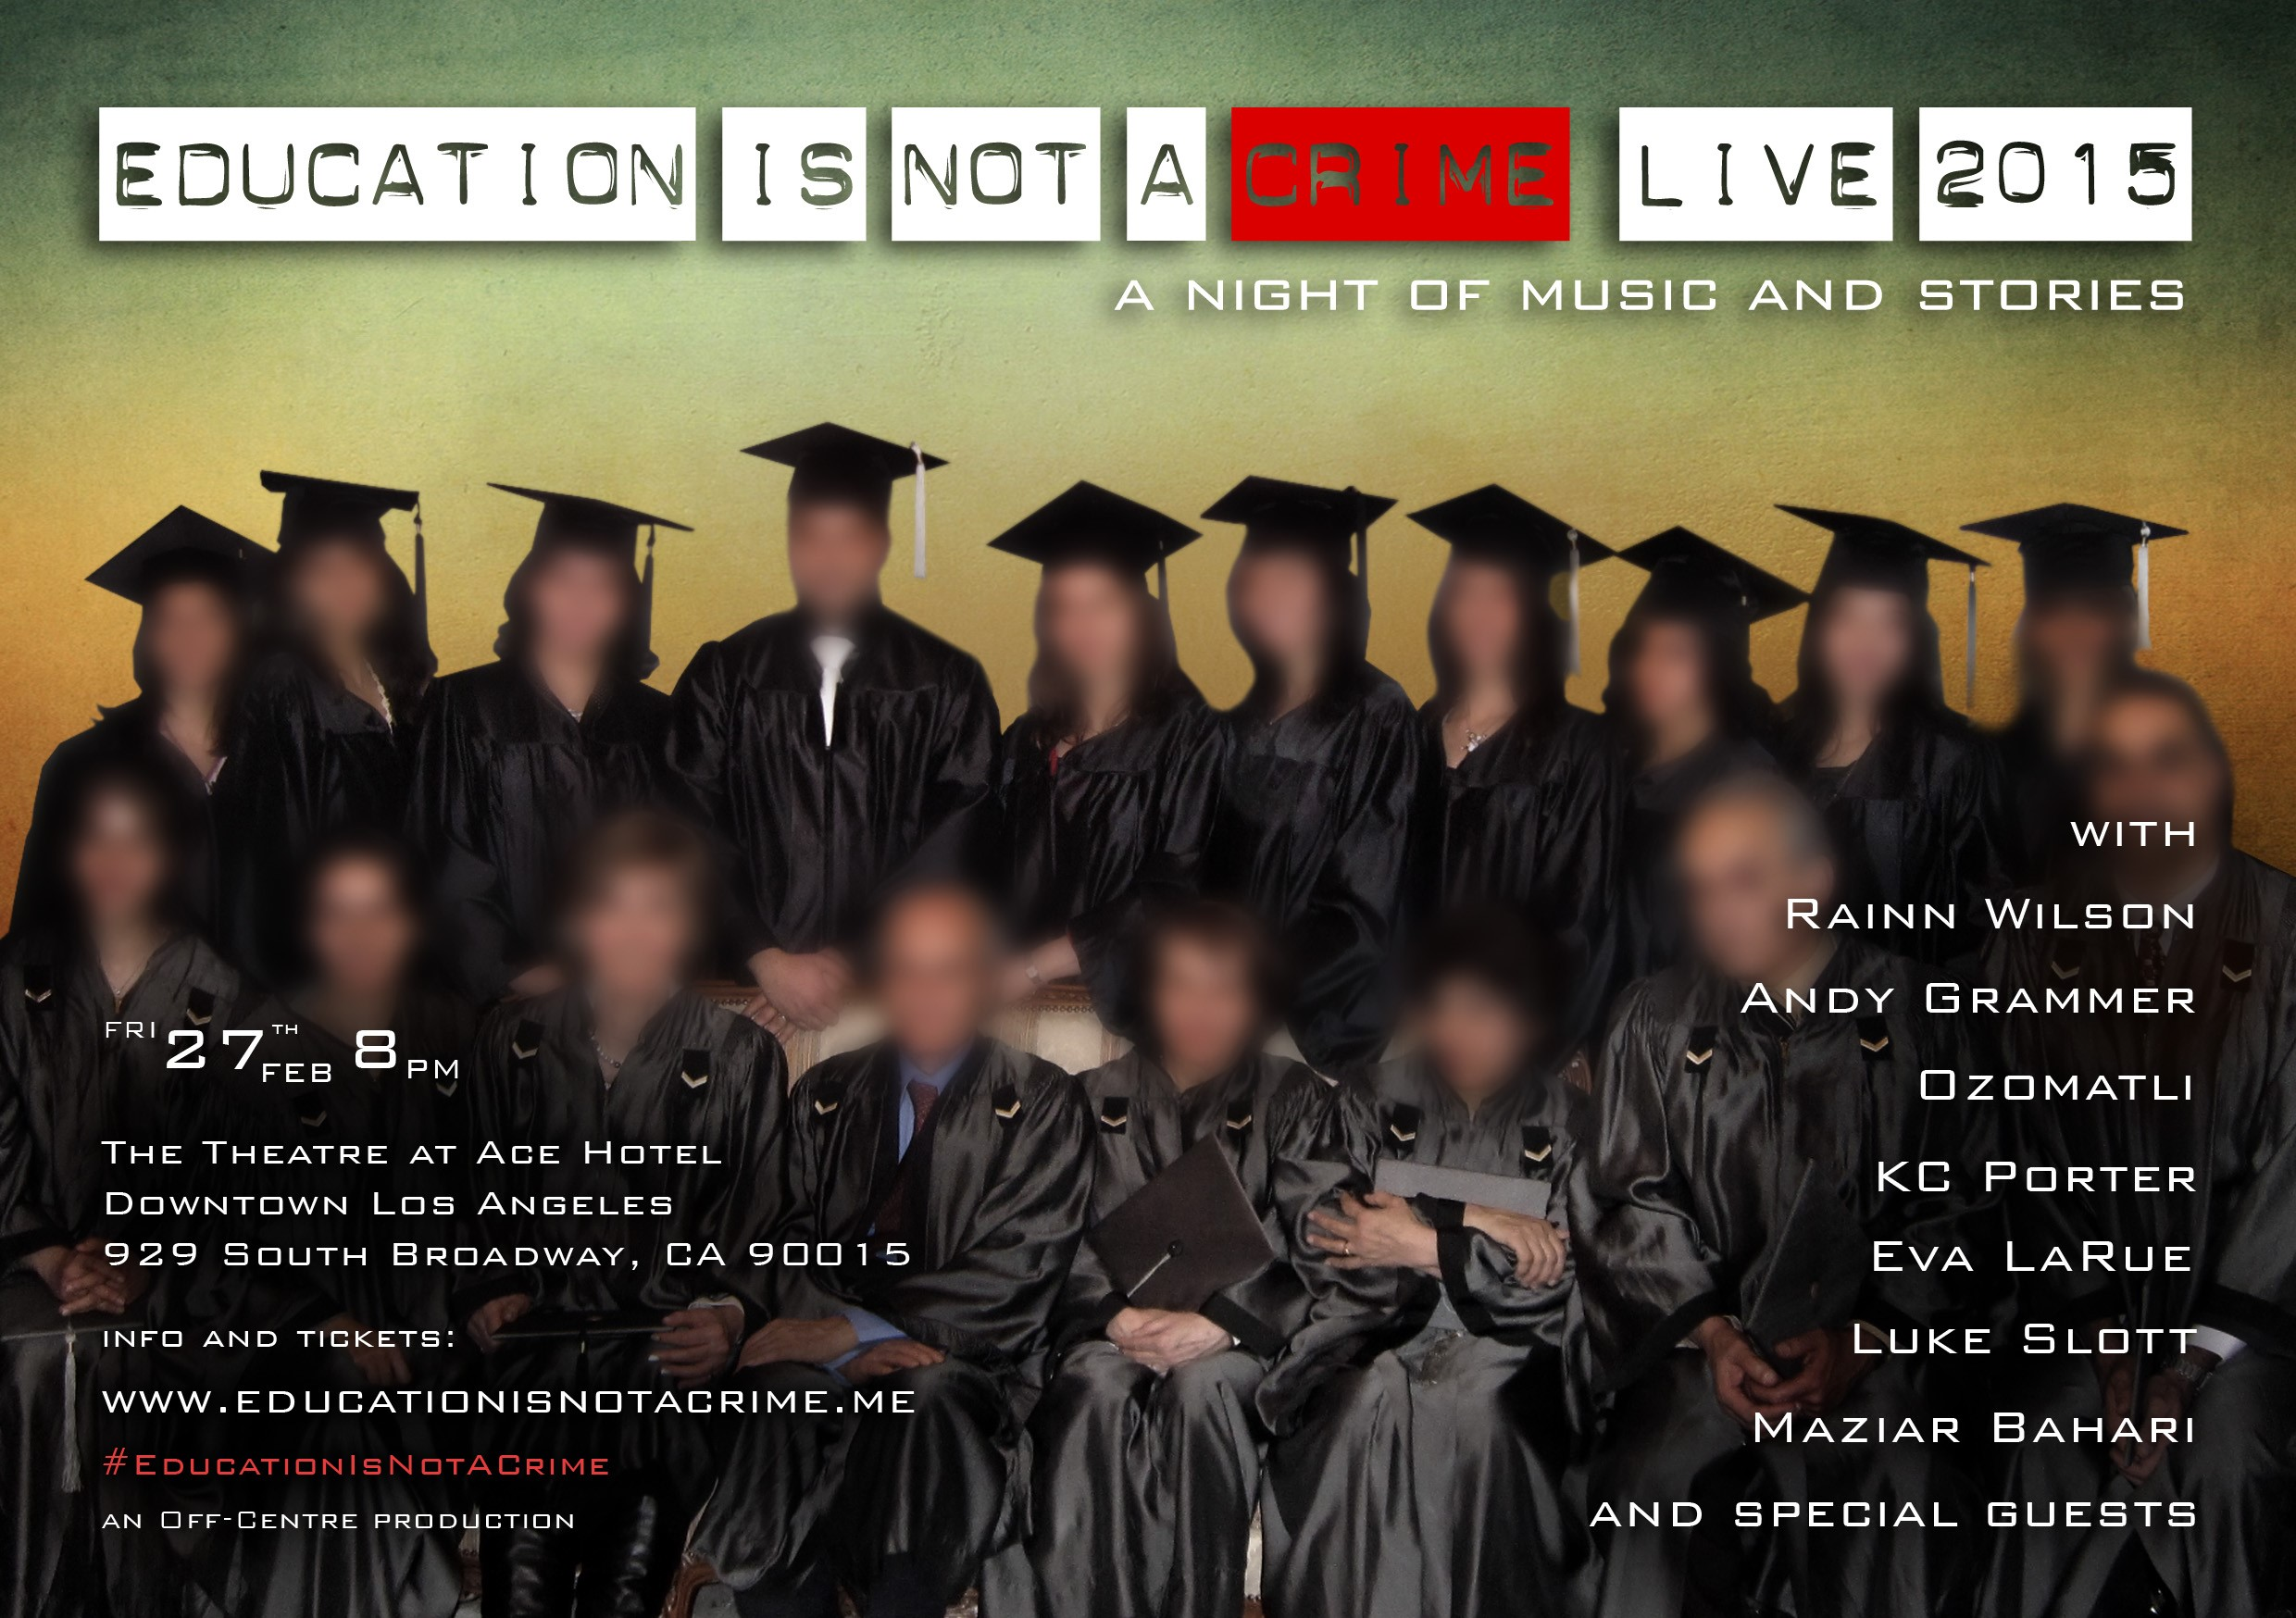 EDUCATION IS NOT A CRIME LIVE 2015